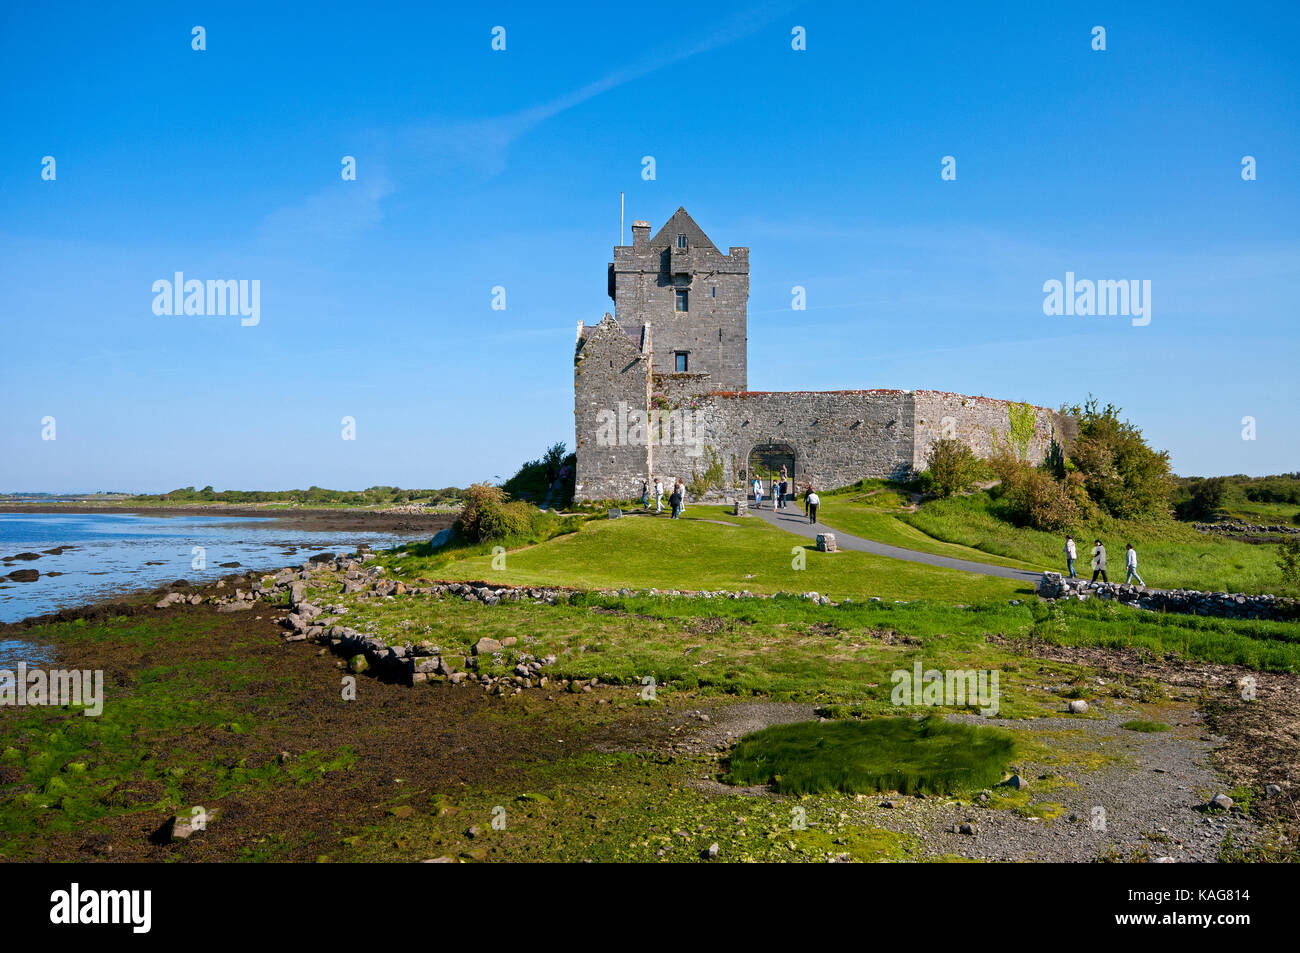 Dunguaire castle, Kinvarra, County Galway, Ireland - Stock Image